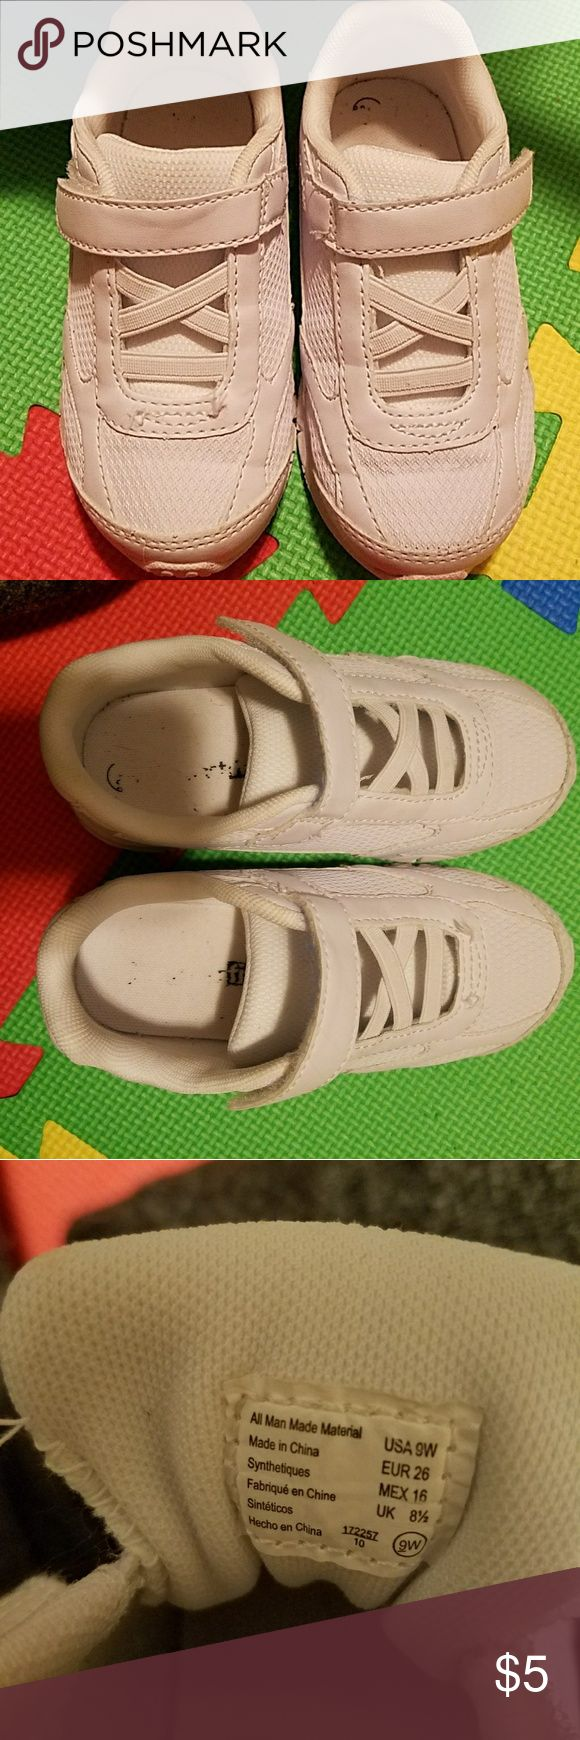 Comfort fit sneakers 9 wide toddler's Shoes Sneakers